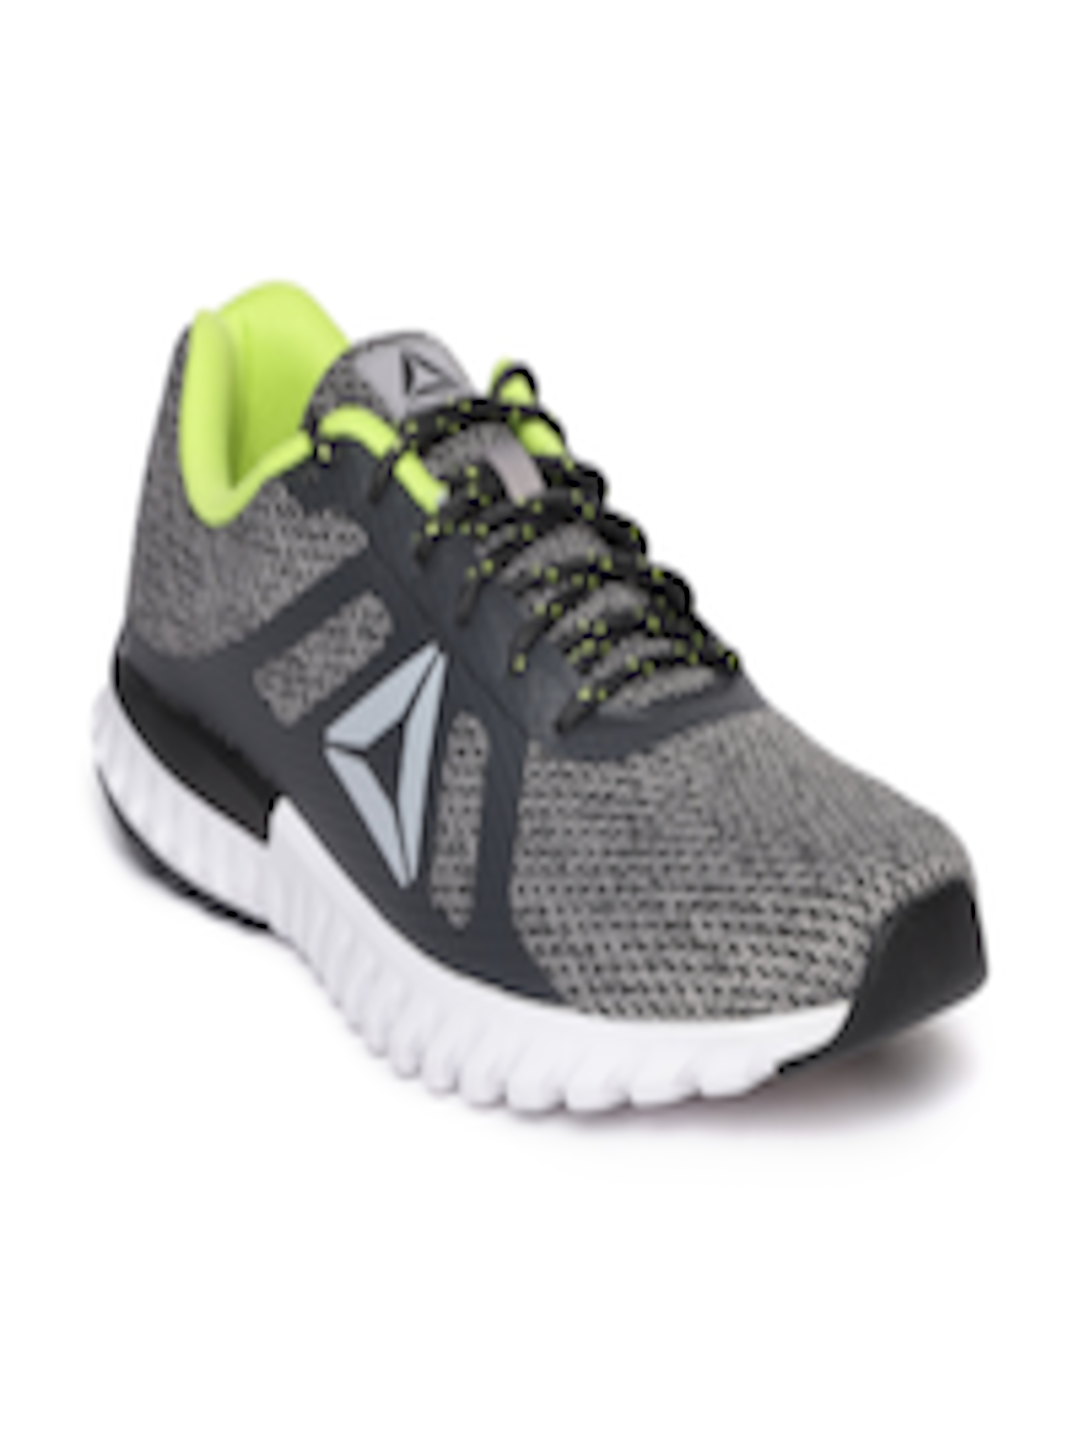 e30211eaf2d Buy Reebok Men Grey Dash Runner LP Shoes - Sports Shoes for Men 6916870